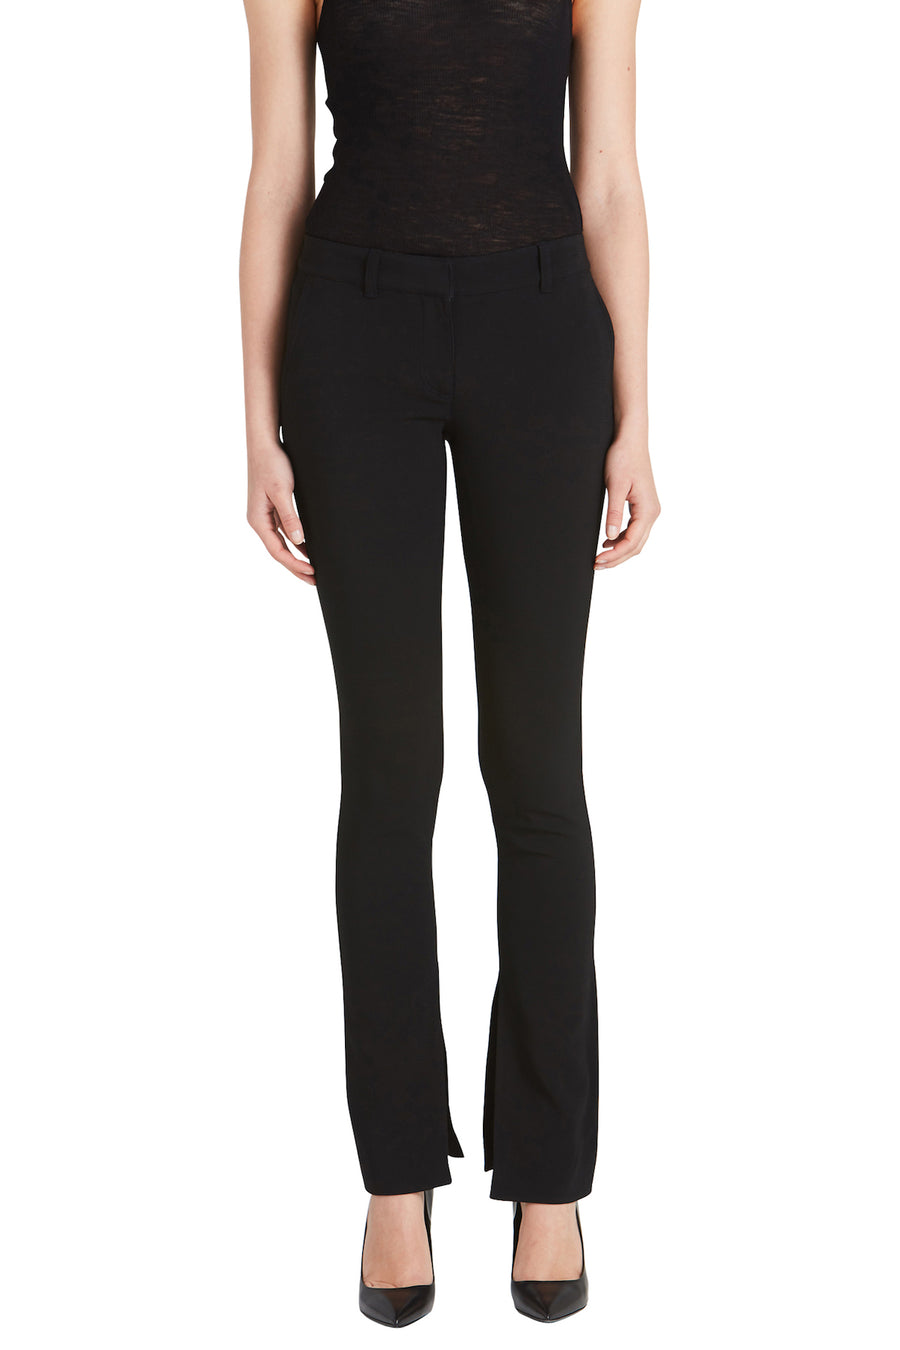 A.L.C. Javier Women's Black Pants from The New Trend